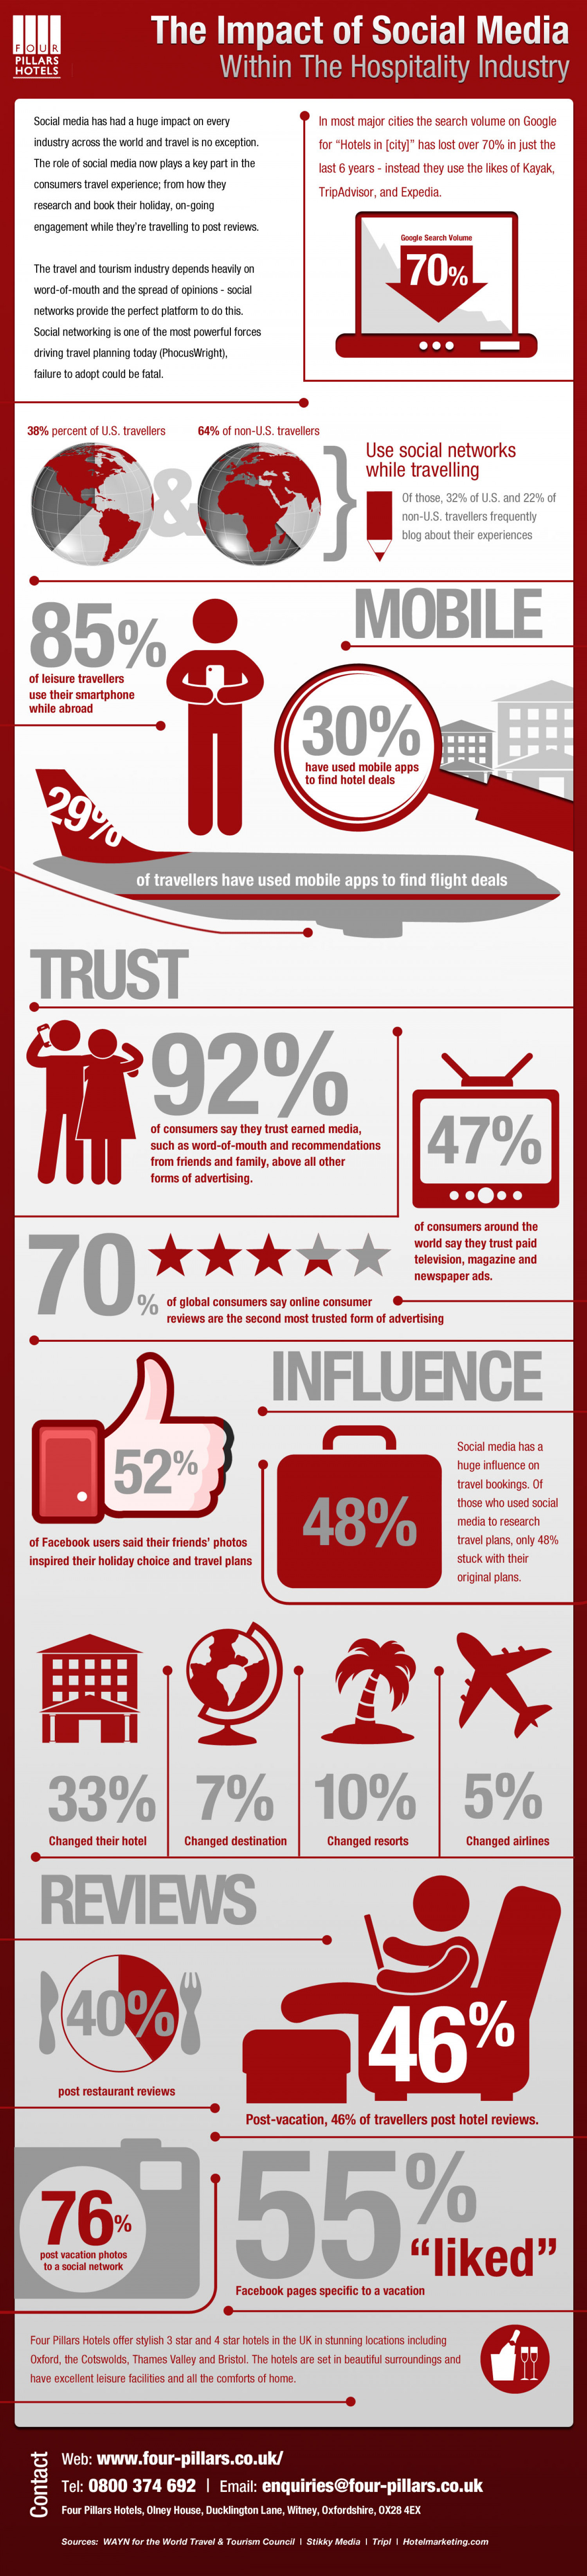 Social Media Impact on hospitality Infographic